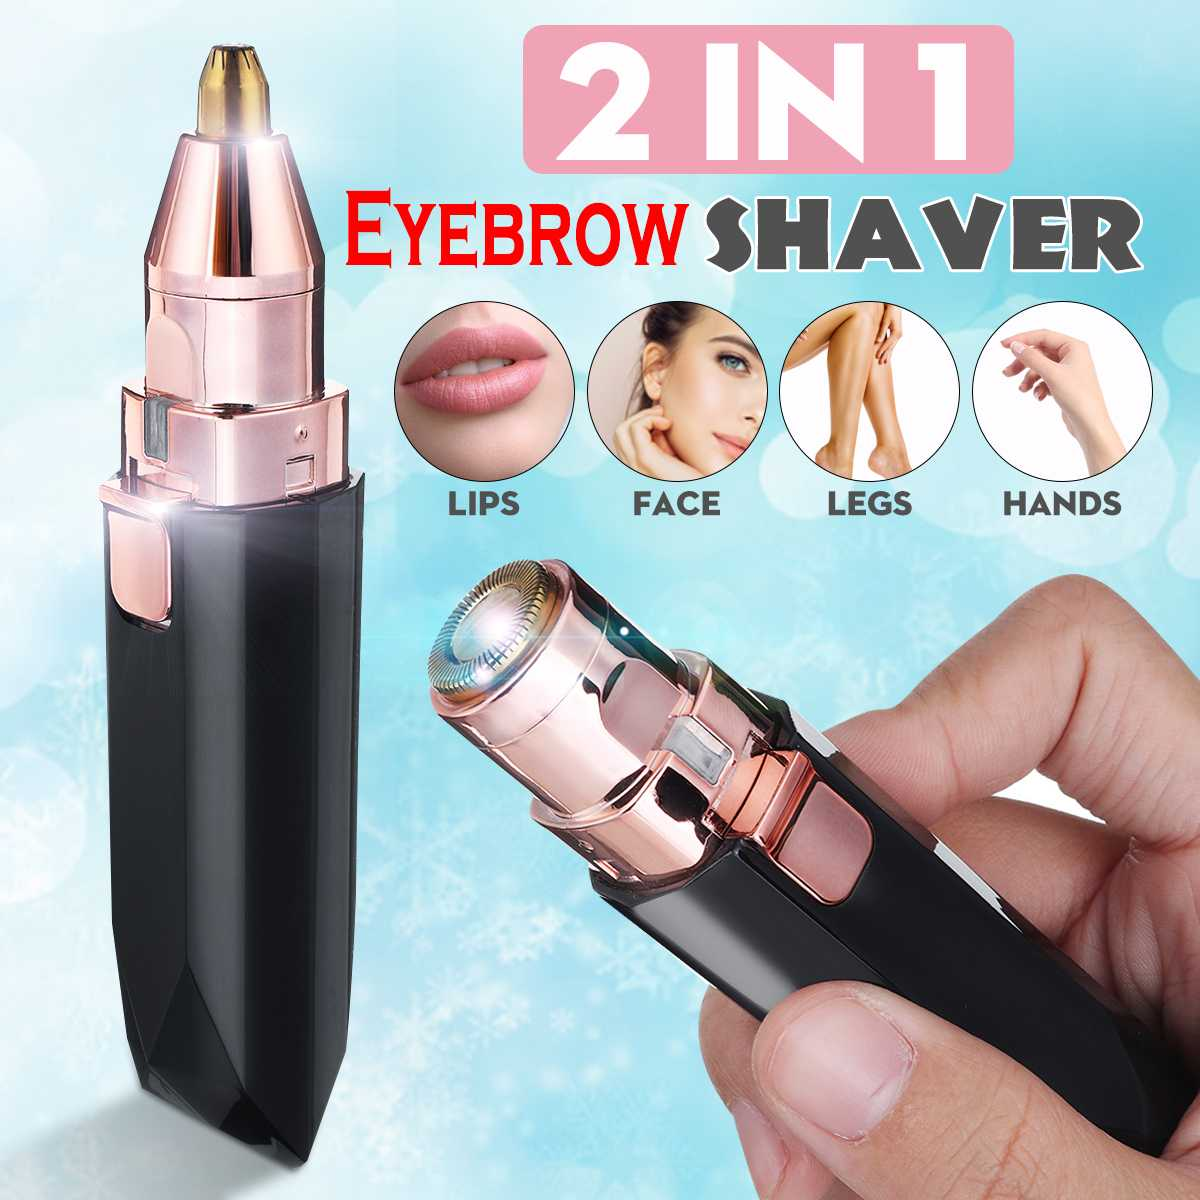 2 In 1 Epilator LED Light Facial Eyebrow Trimmer Painless Hair Remover Face Shavers ABS Plastic Women Shaver Detachable Head